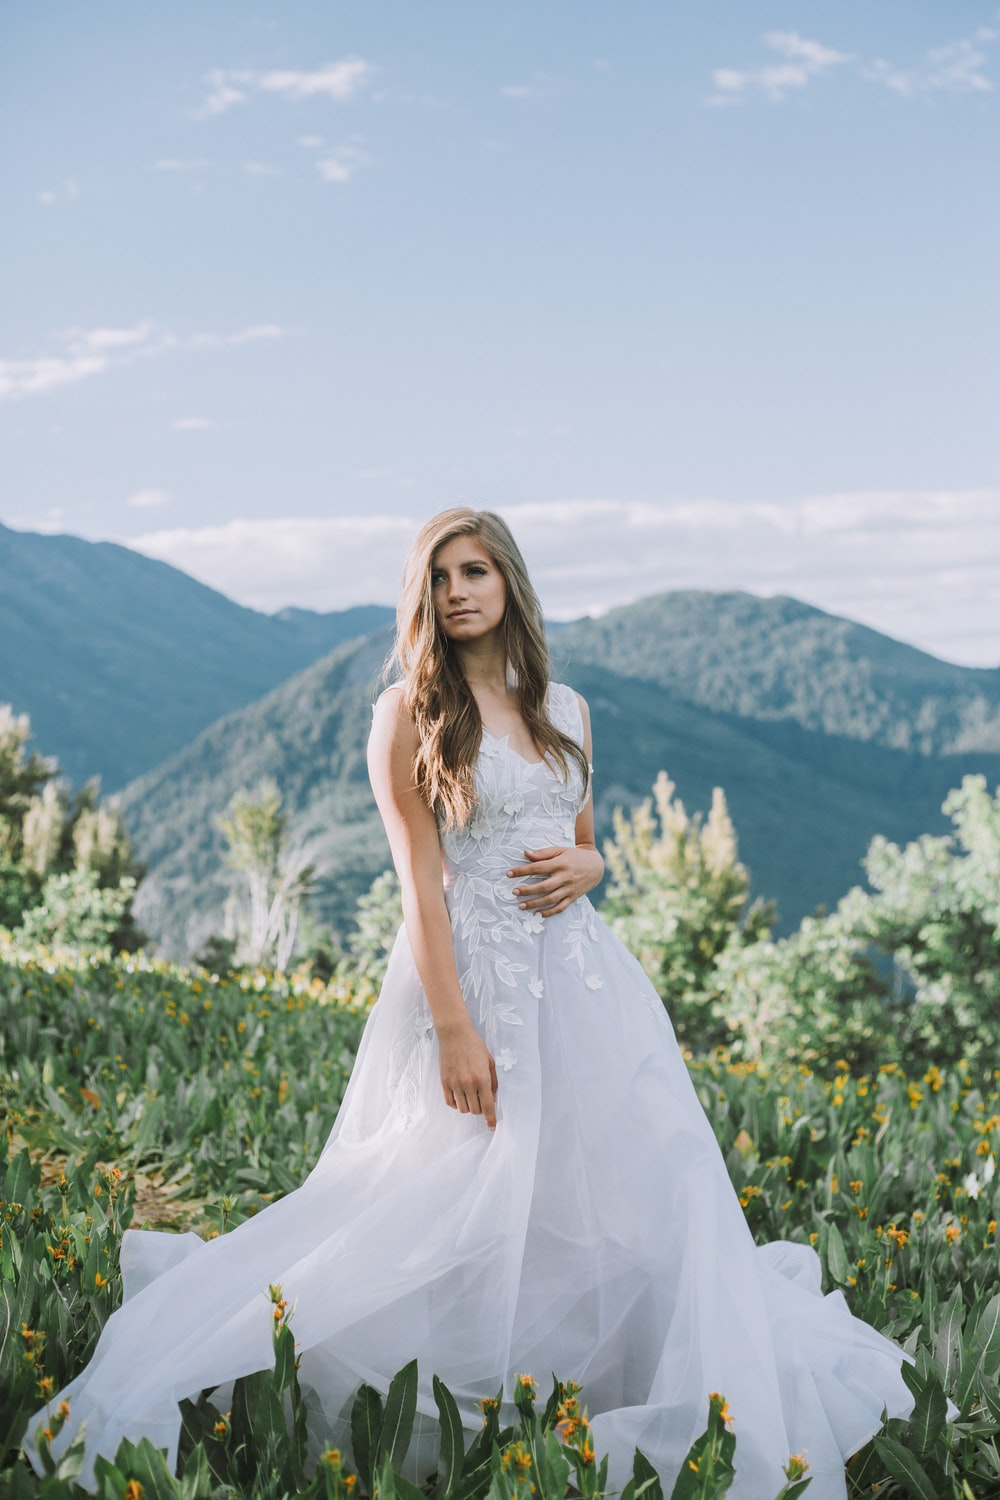 100+ Wedding Dress Pictures | Download Free Images on Unsplash